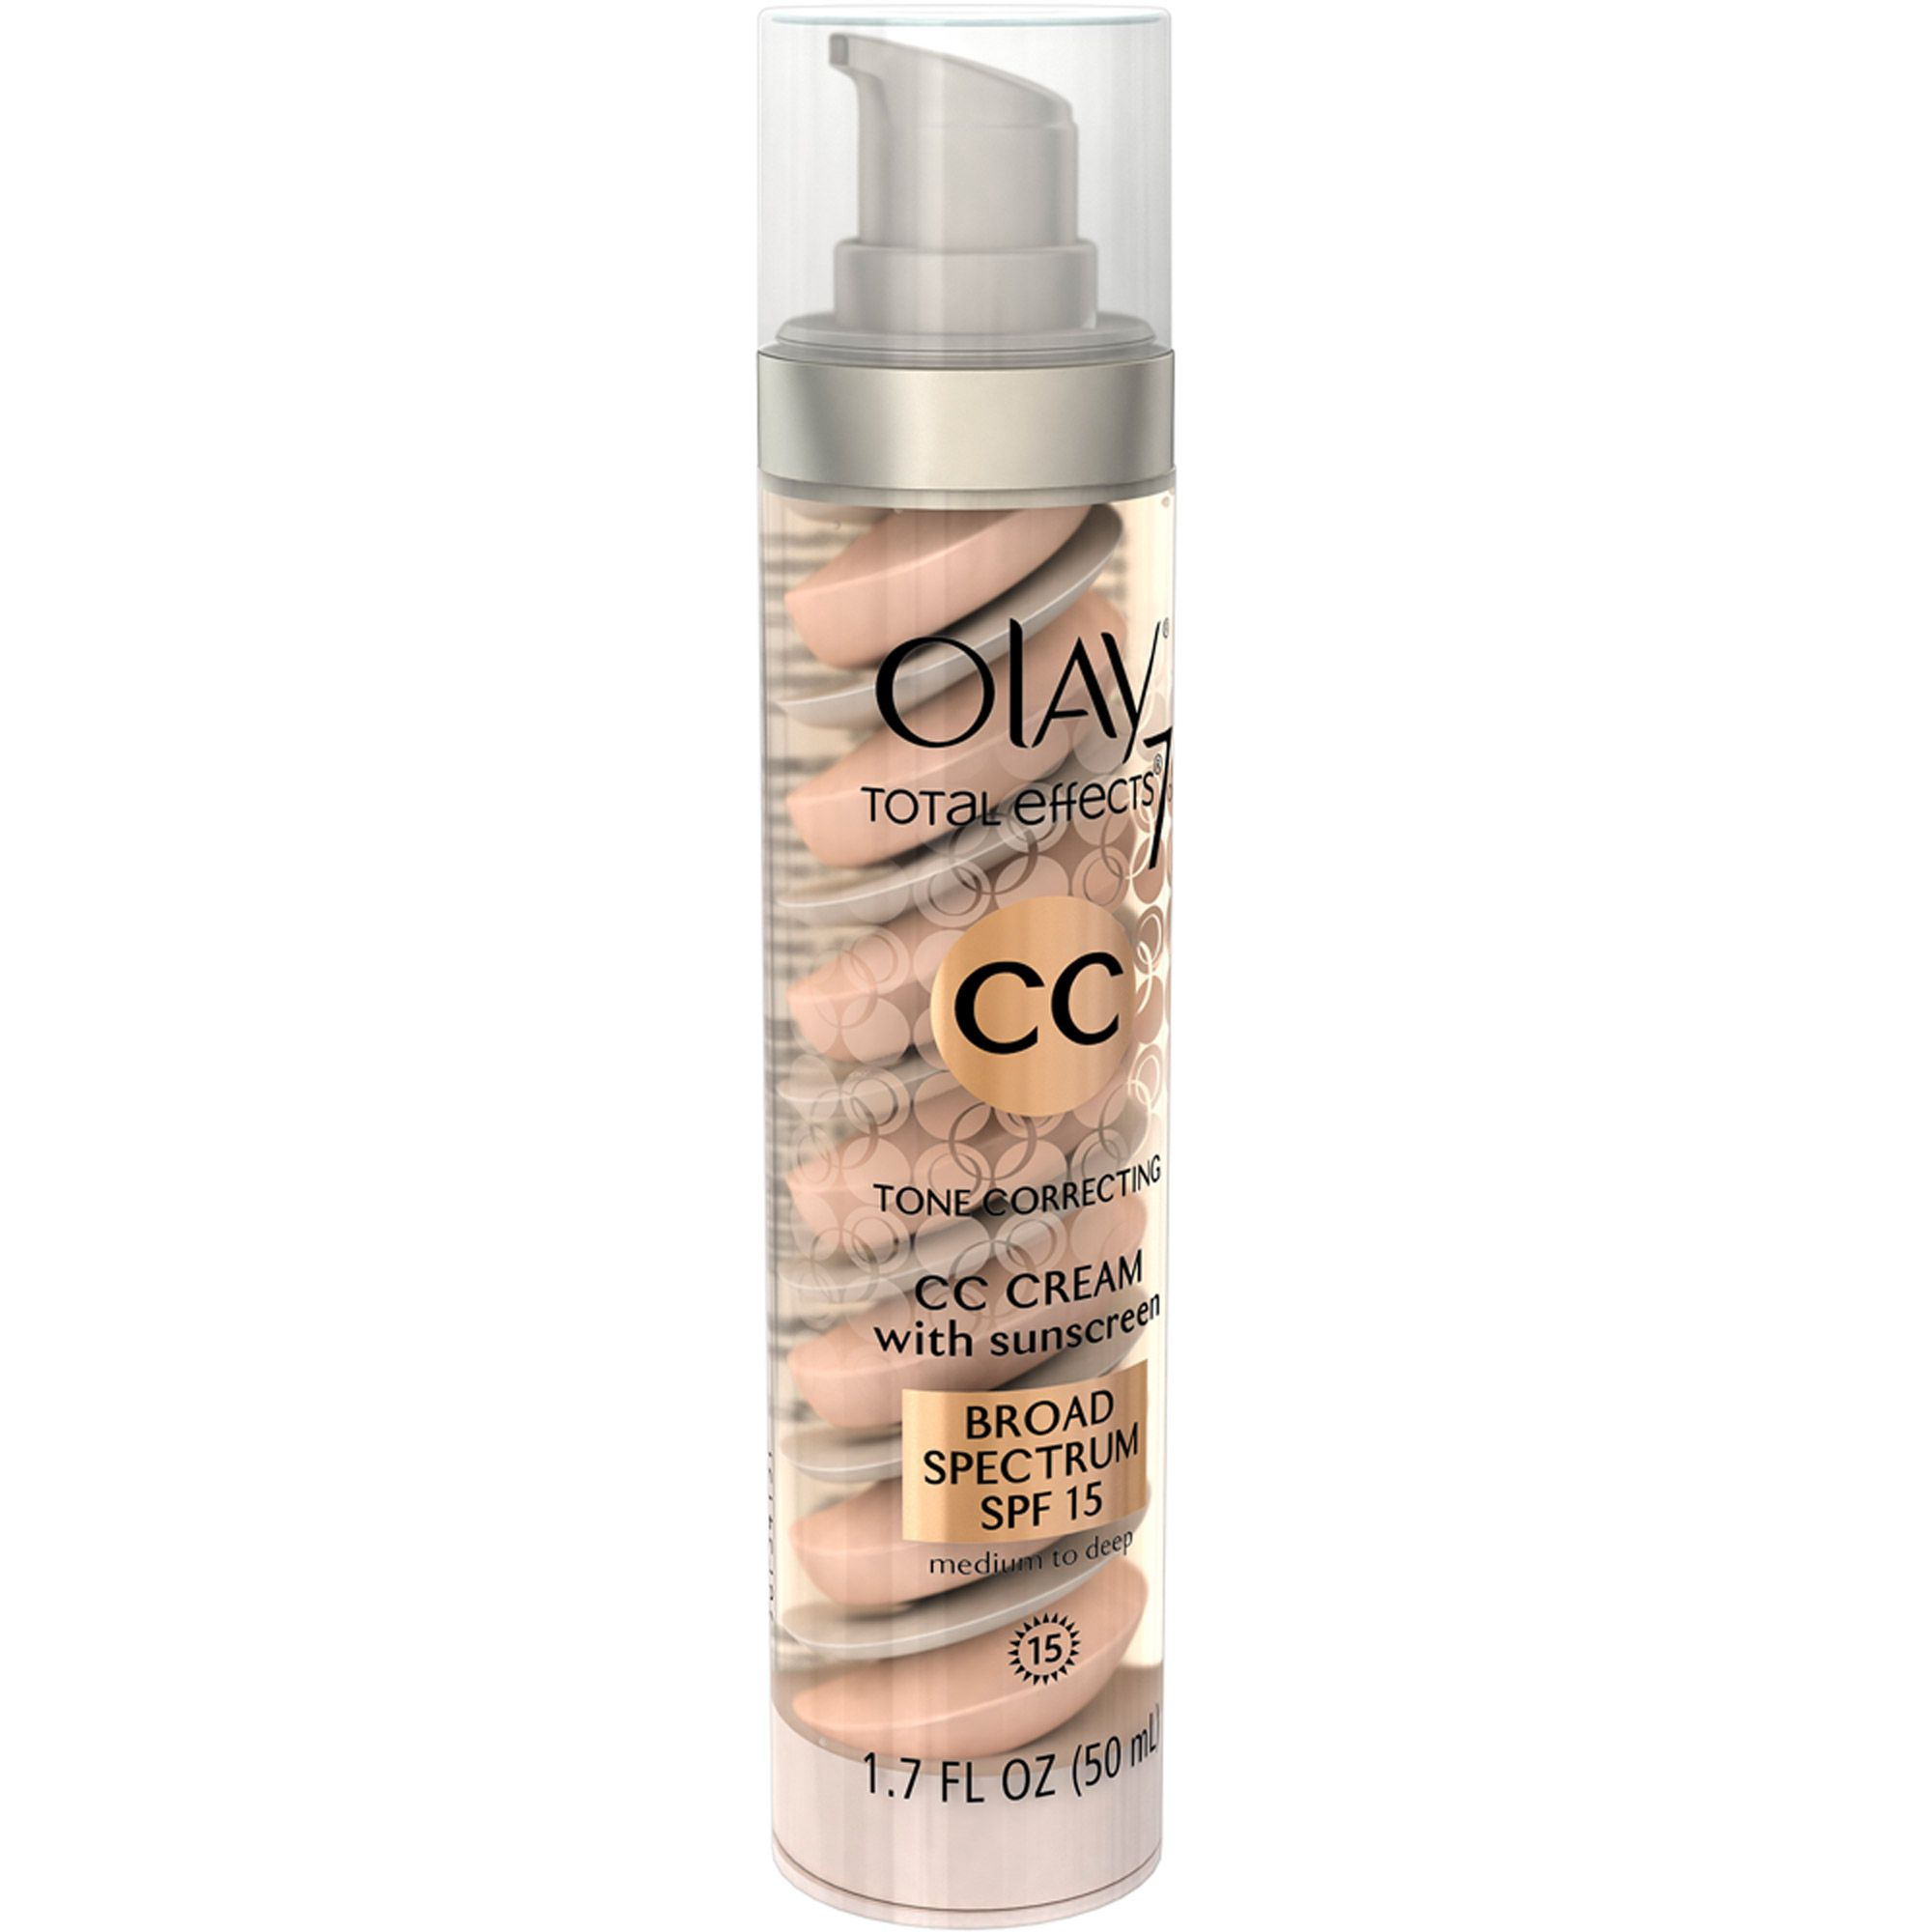 Olay Total Effects 7 In One CC Tone Correcting Moisturizer SPF 15